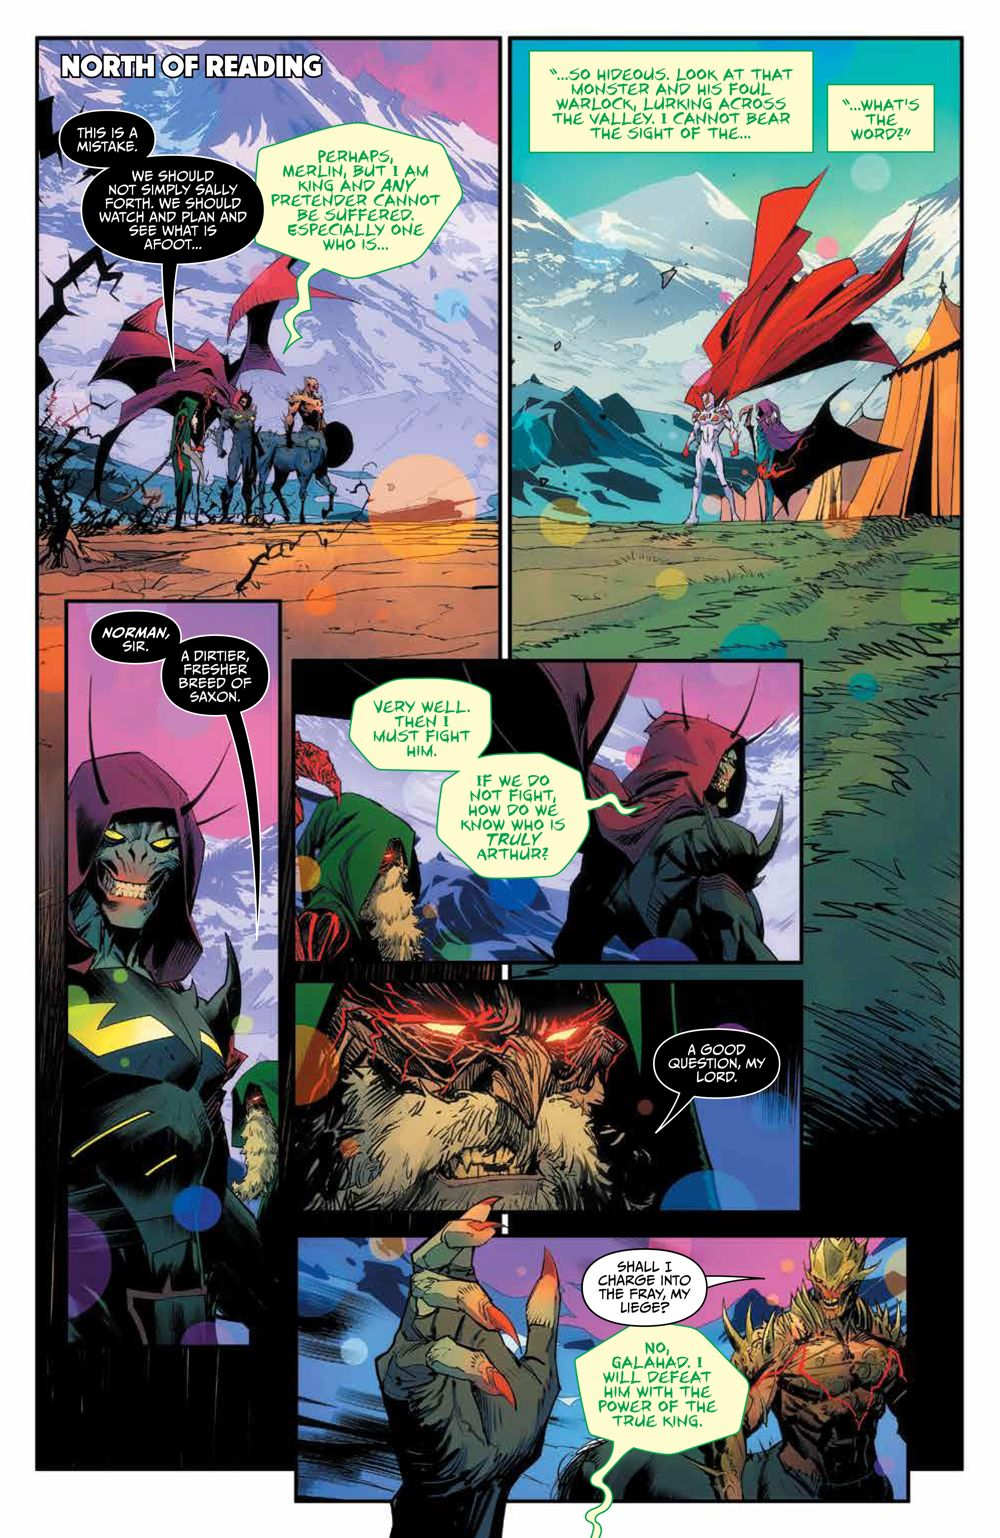 OnceFuture_020_PRESS_5 ComicList Previews: ONCE AND FUTURE #20